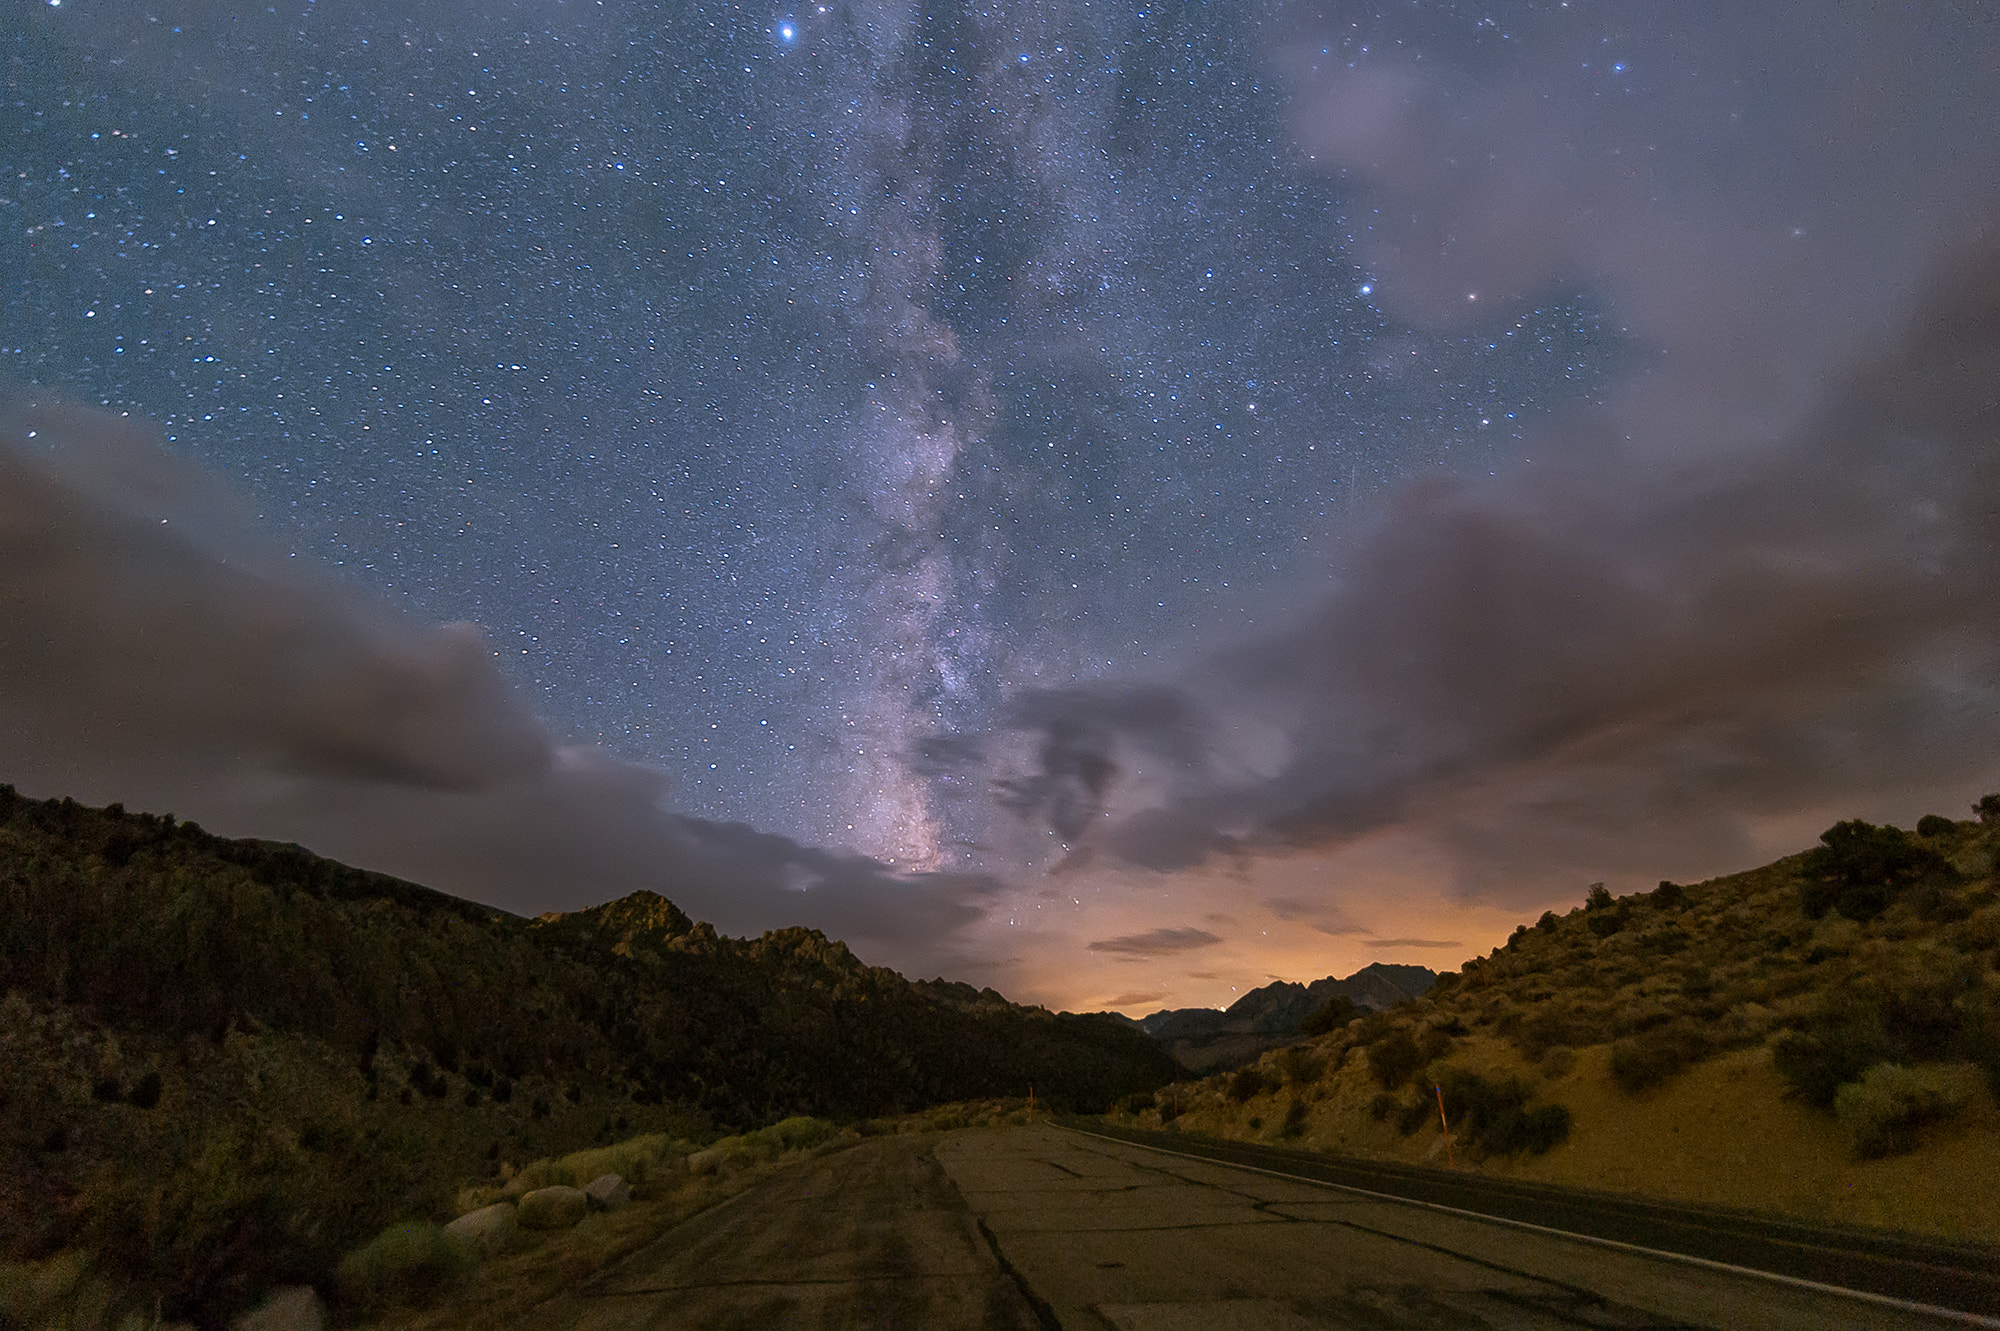 Photograph Converging on the Milky Way by Mark Esguerra on 500px